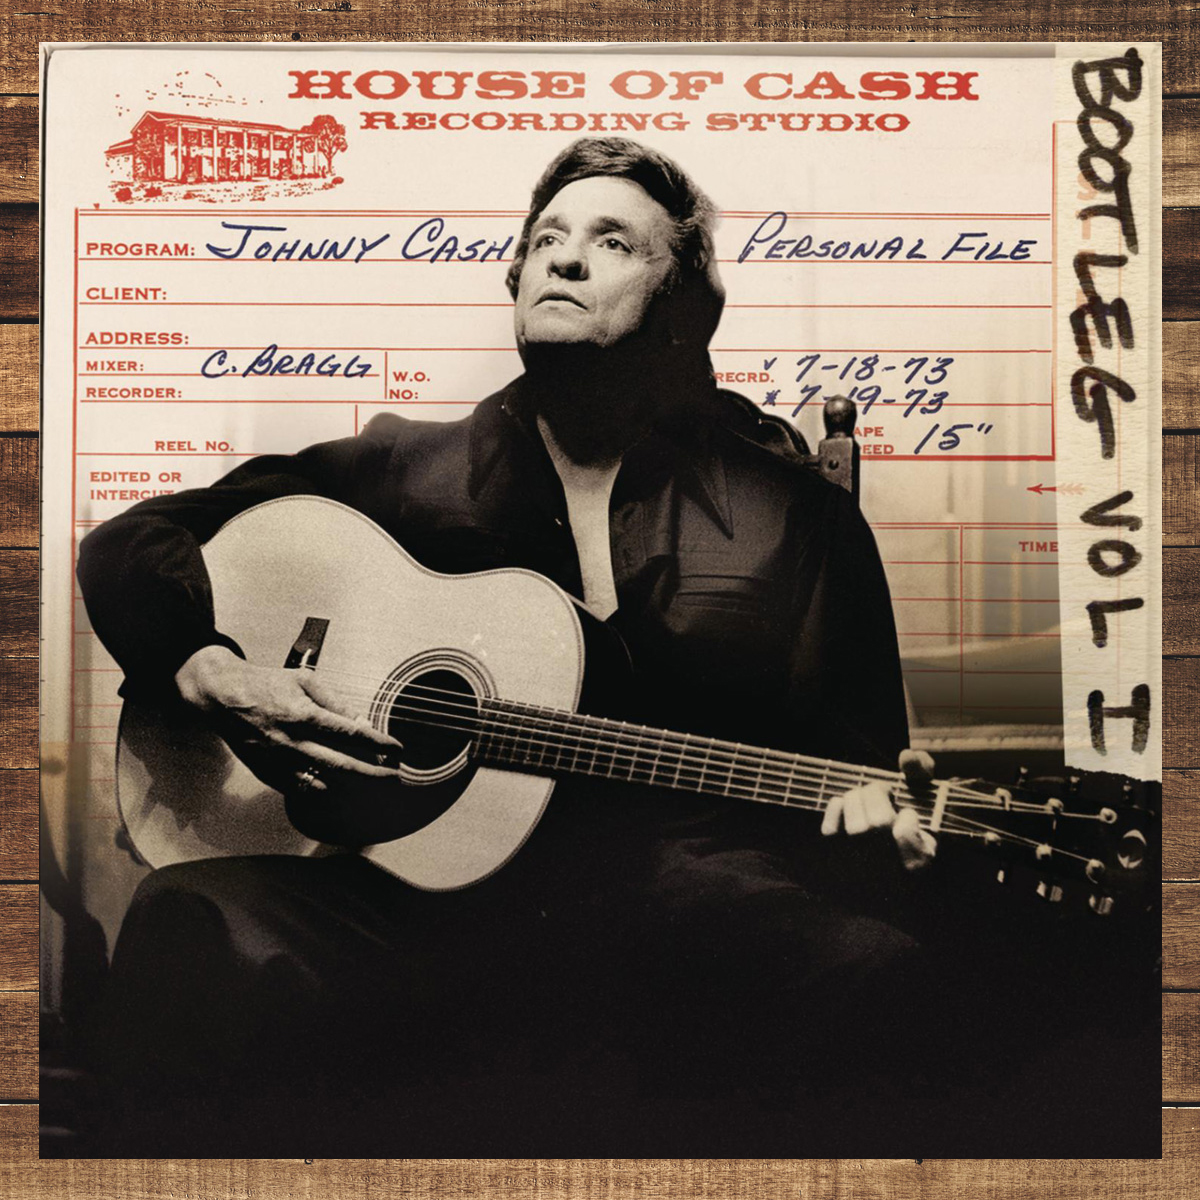 Johnny Cash Bootleg, Volume 1: Personal File CD